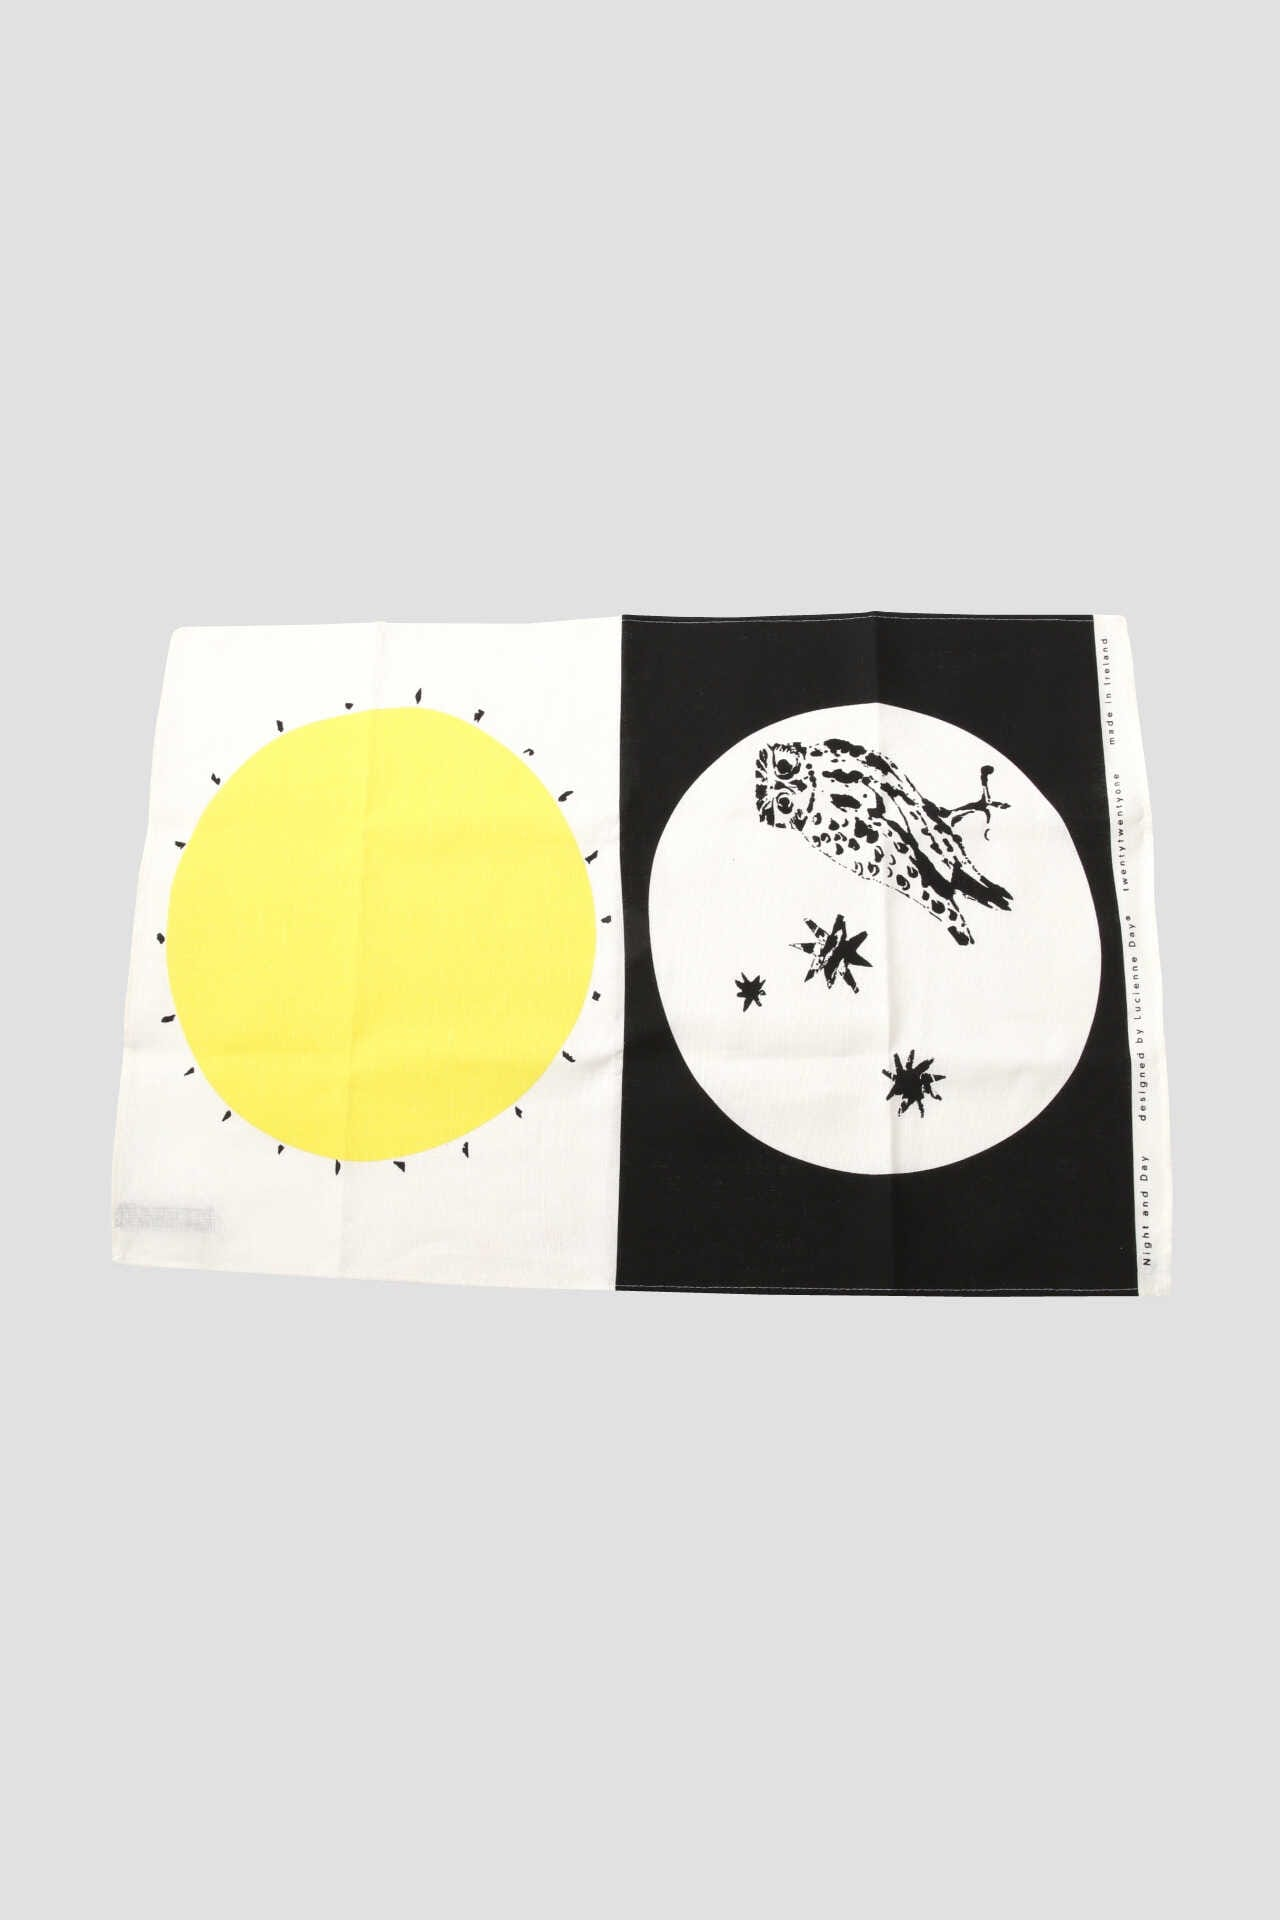 LUCIENNE DAY OWL1